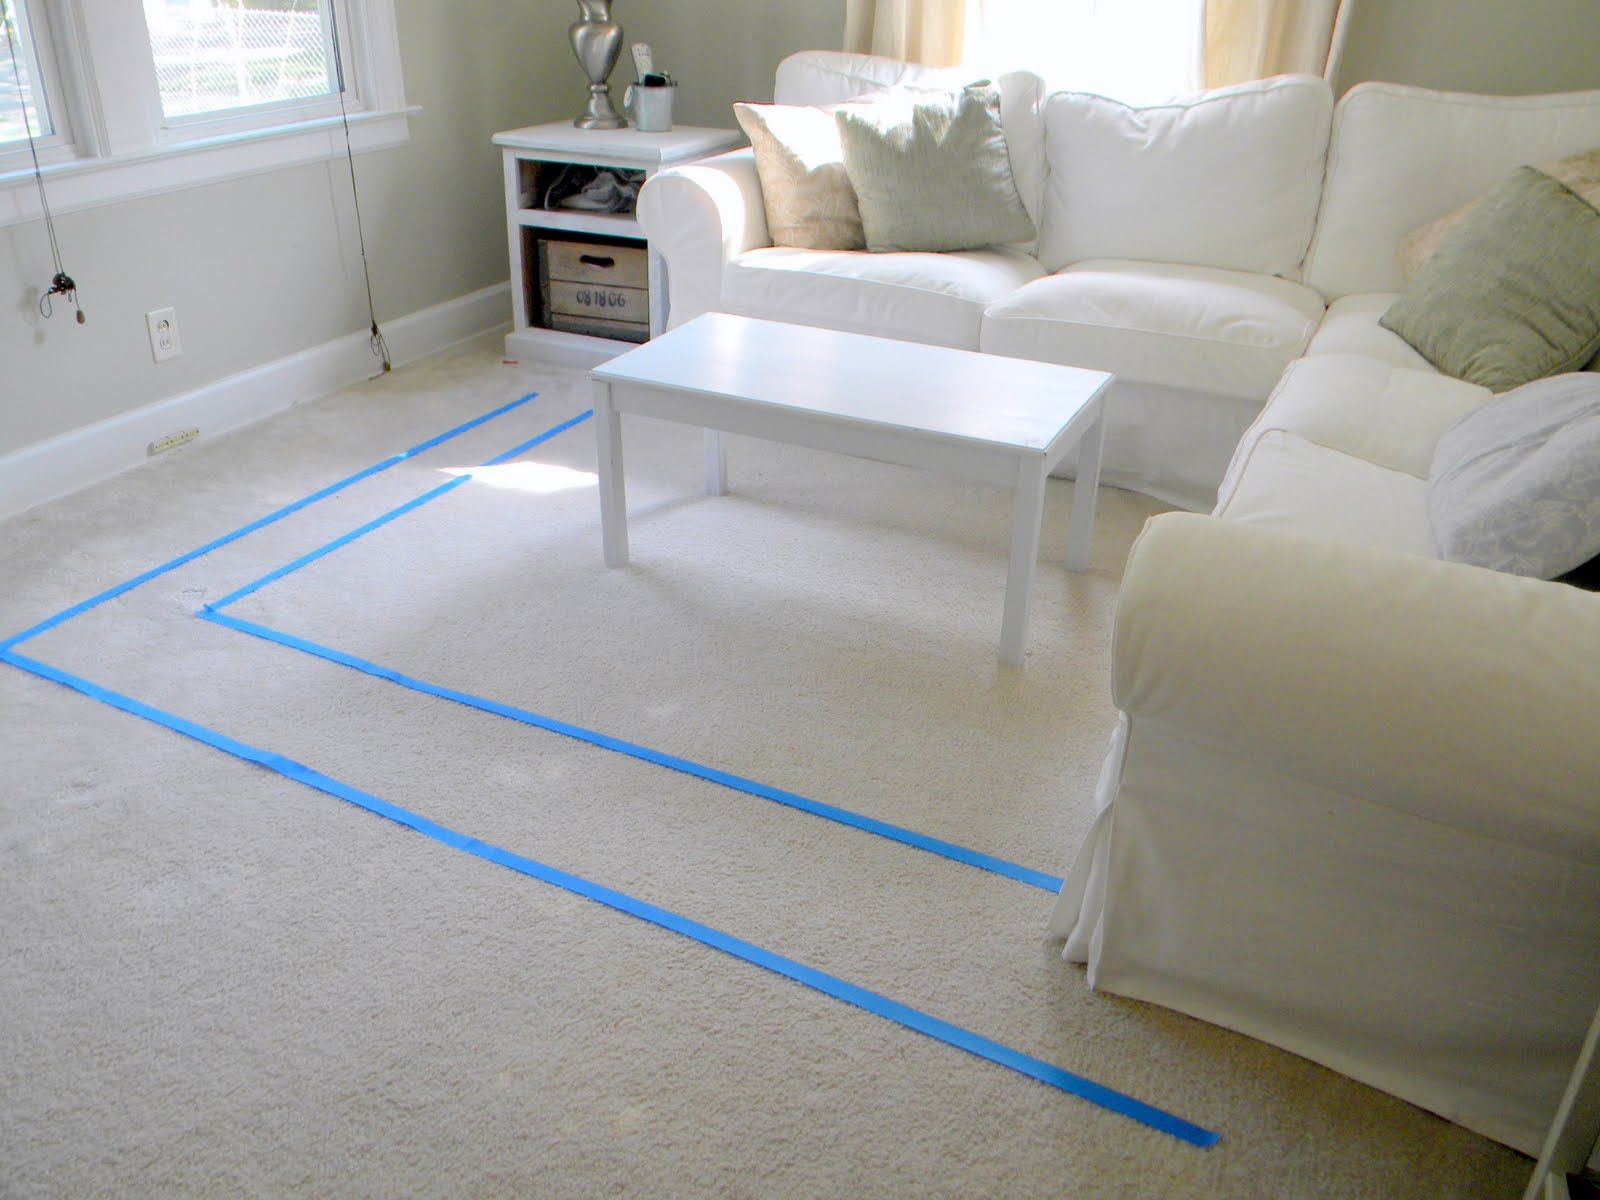 Just Like Paint Testing Tape Off Area To See What Size Rug You Would Prefer For Your Room Smaller One Is And Larger Taped Via Fingerprints On